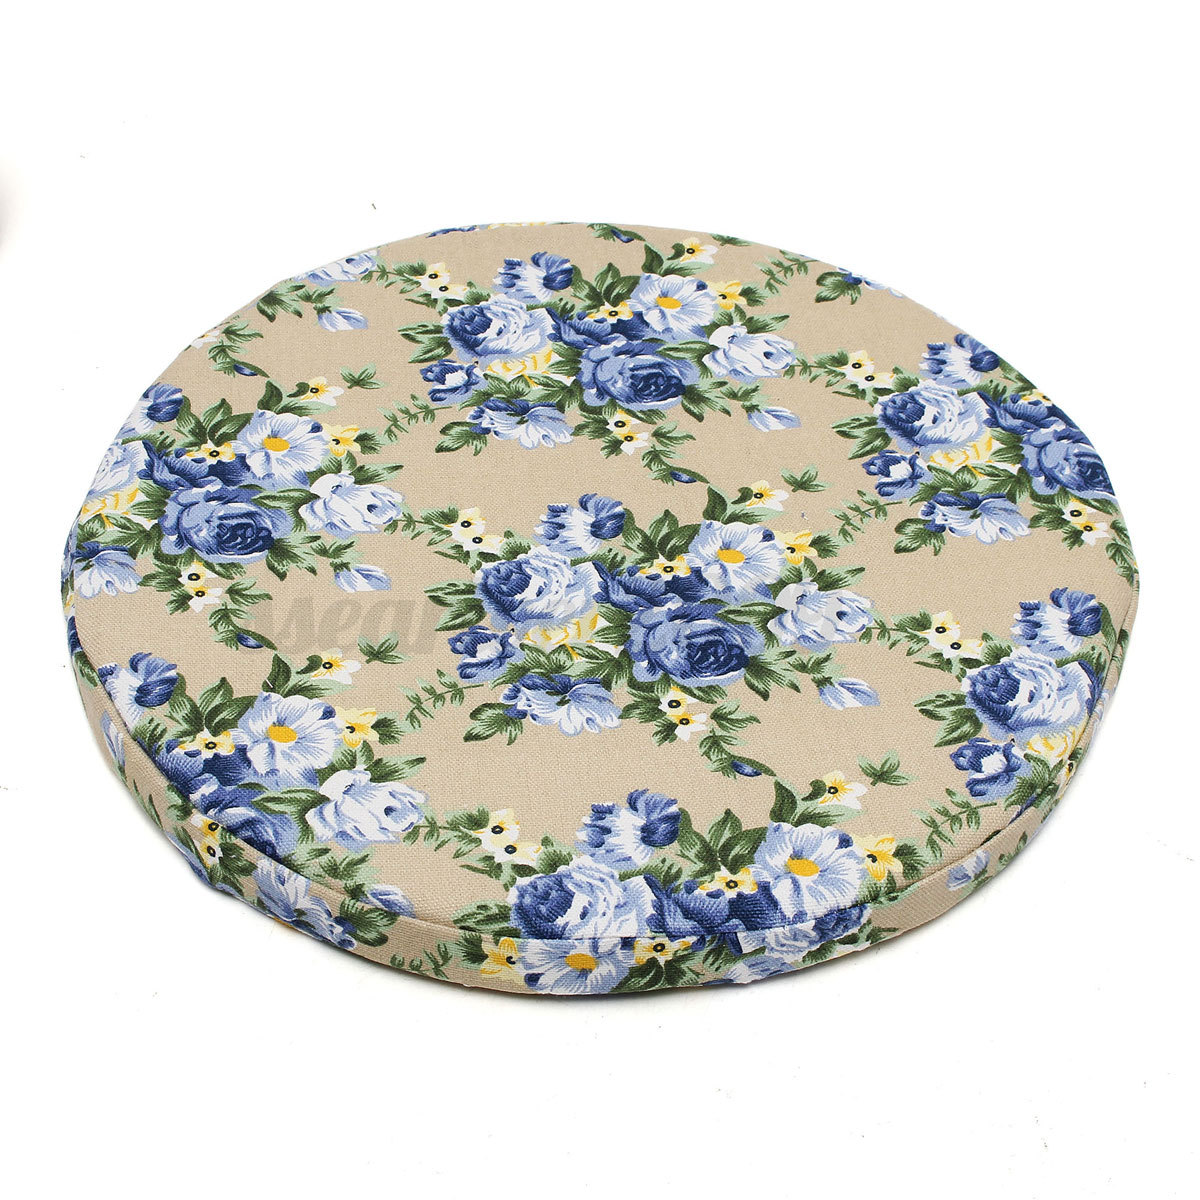 round soft offic sofa chair seat pad cushion kitchen. Black Bedroom Furniture Sets. Home Design Ideas